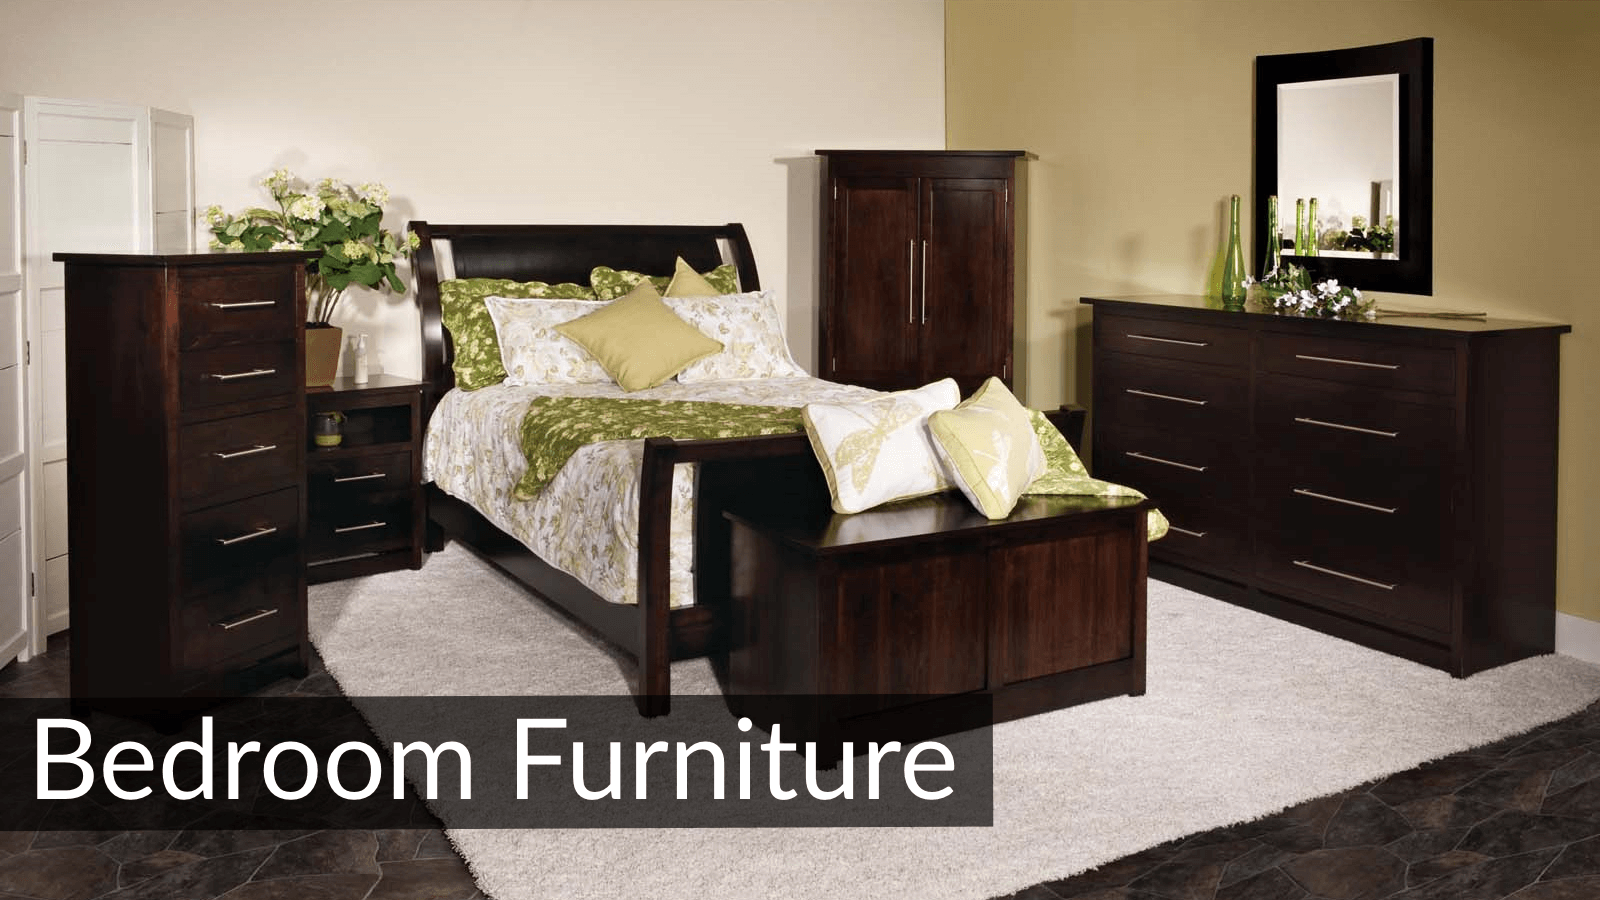 BedroomFurnitureButton